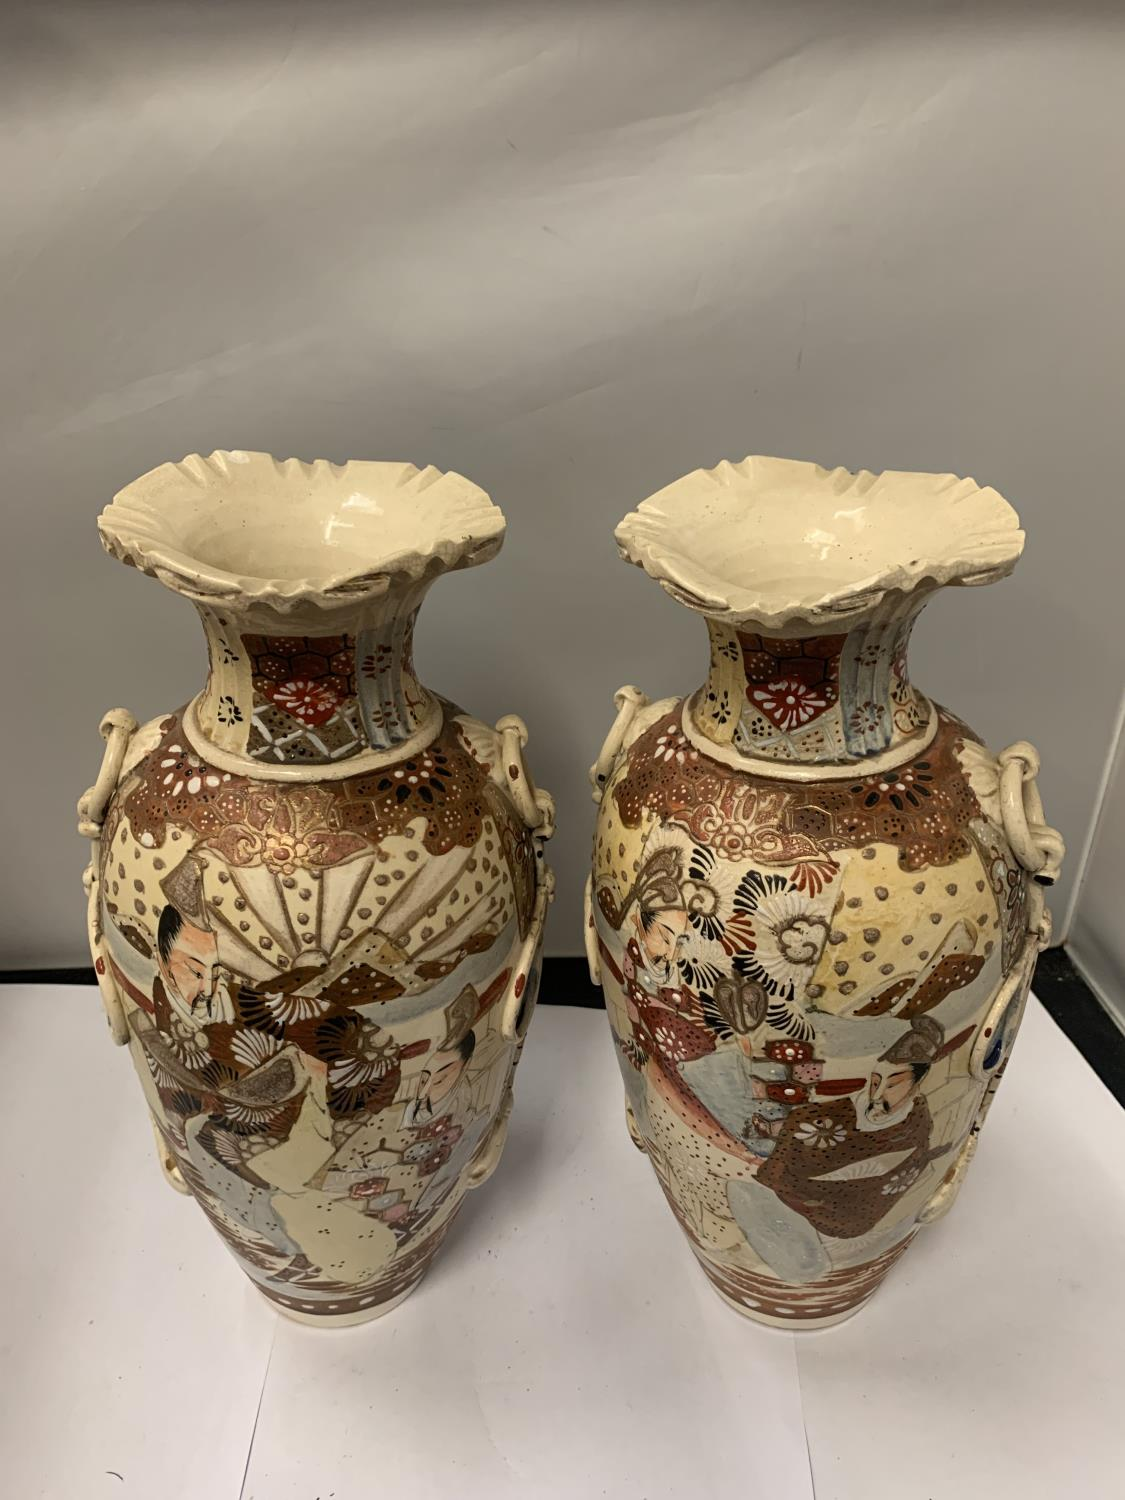 TWO HIGHLY DECORATIVE SATSUMA STYLE ORIENTAL VASES, HEIGHT 32CM, NUMBER '31' TO BASE